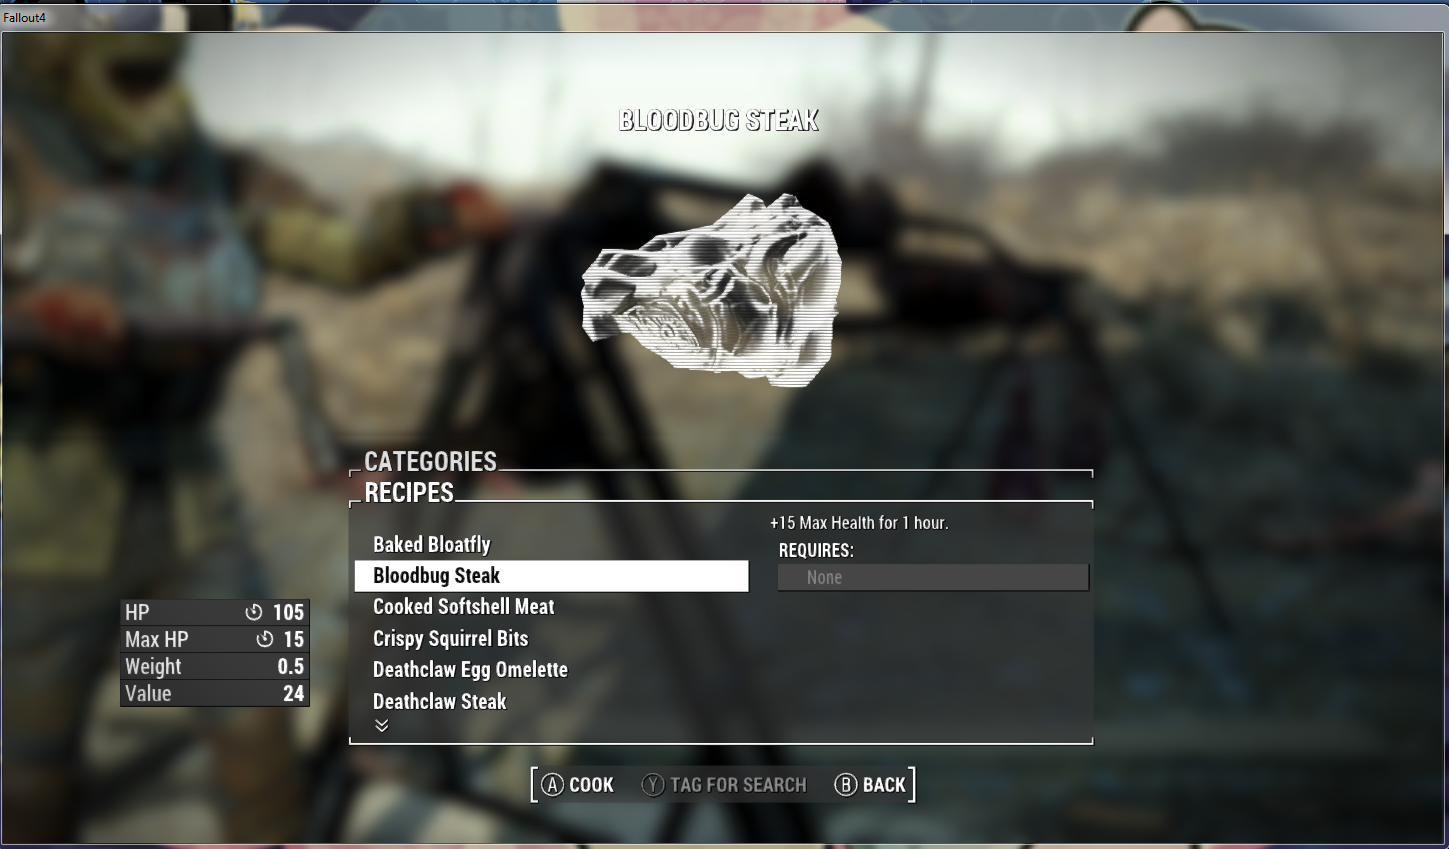 Fallout Chem Crafting To Sell